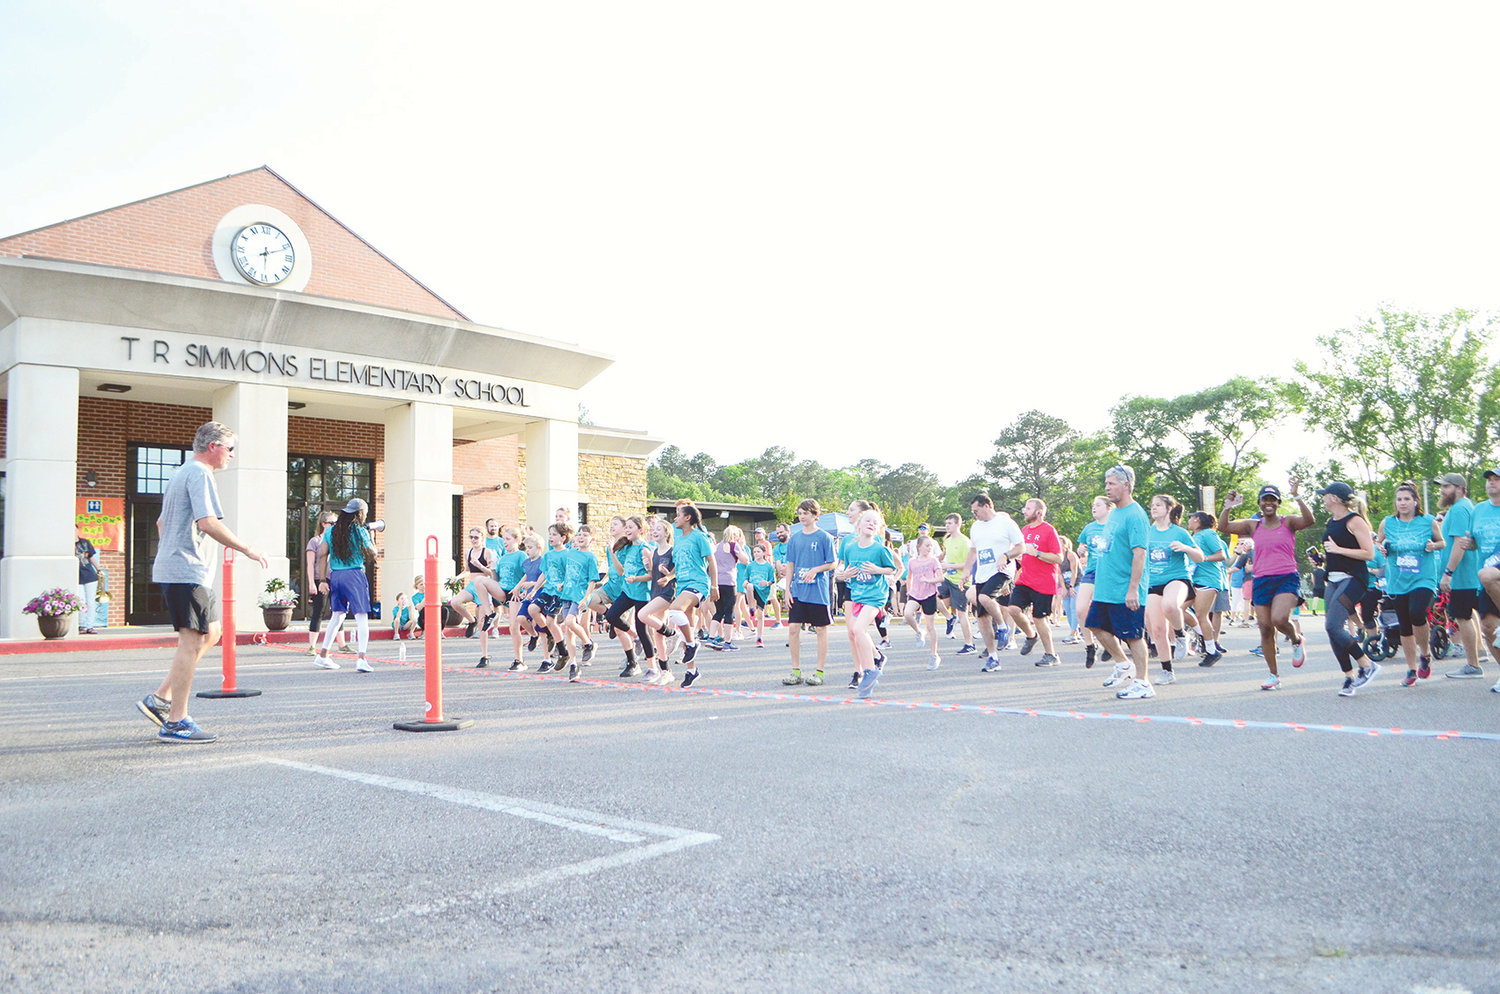 Rain held off for the Simmons @ Sunset 5K and Fun Run Friday night. Hundreds gathered for the annual event that takes runners around Jasper and raises money for T.R. Simmons Elementary School. Others gathered for fun and food on the school's campus Friday.